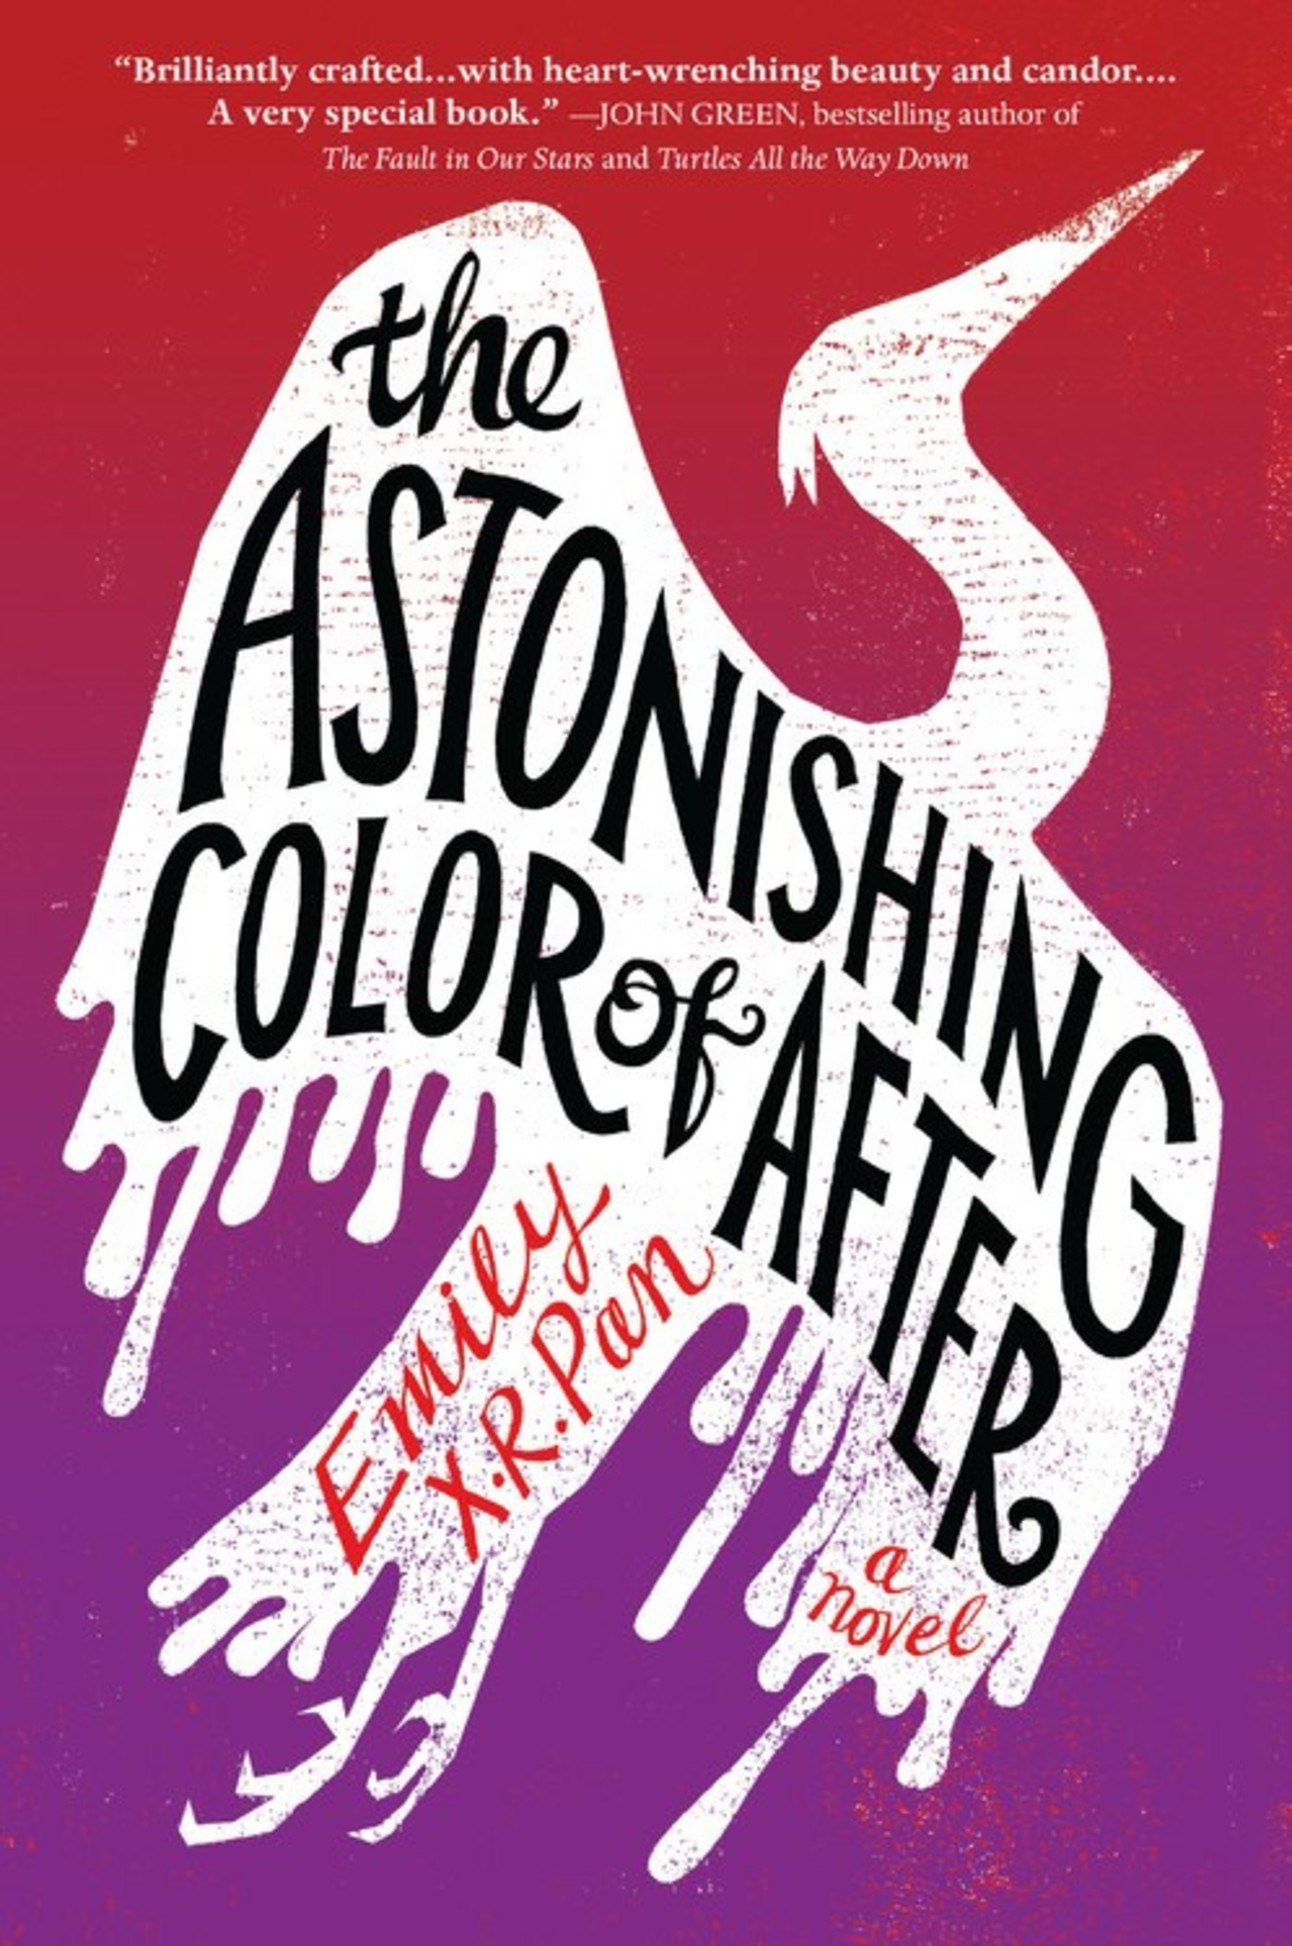 astonishing color of after emily pan